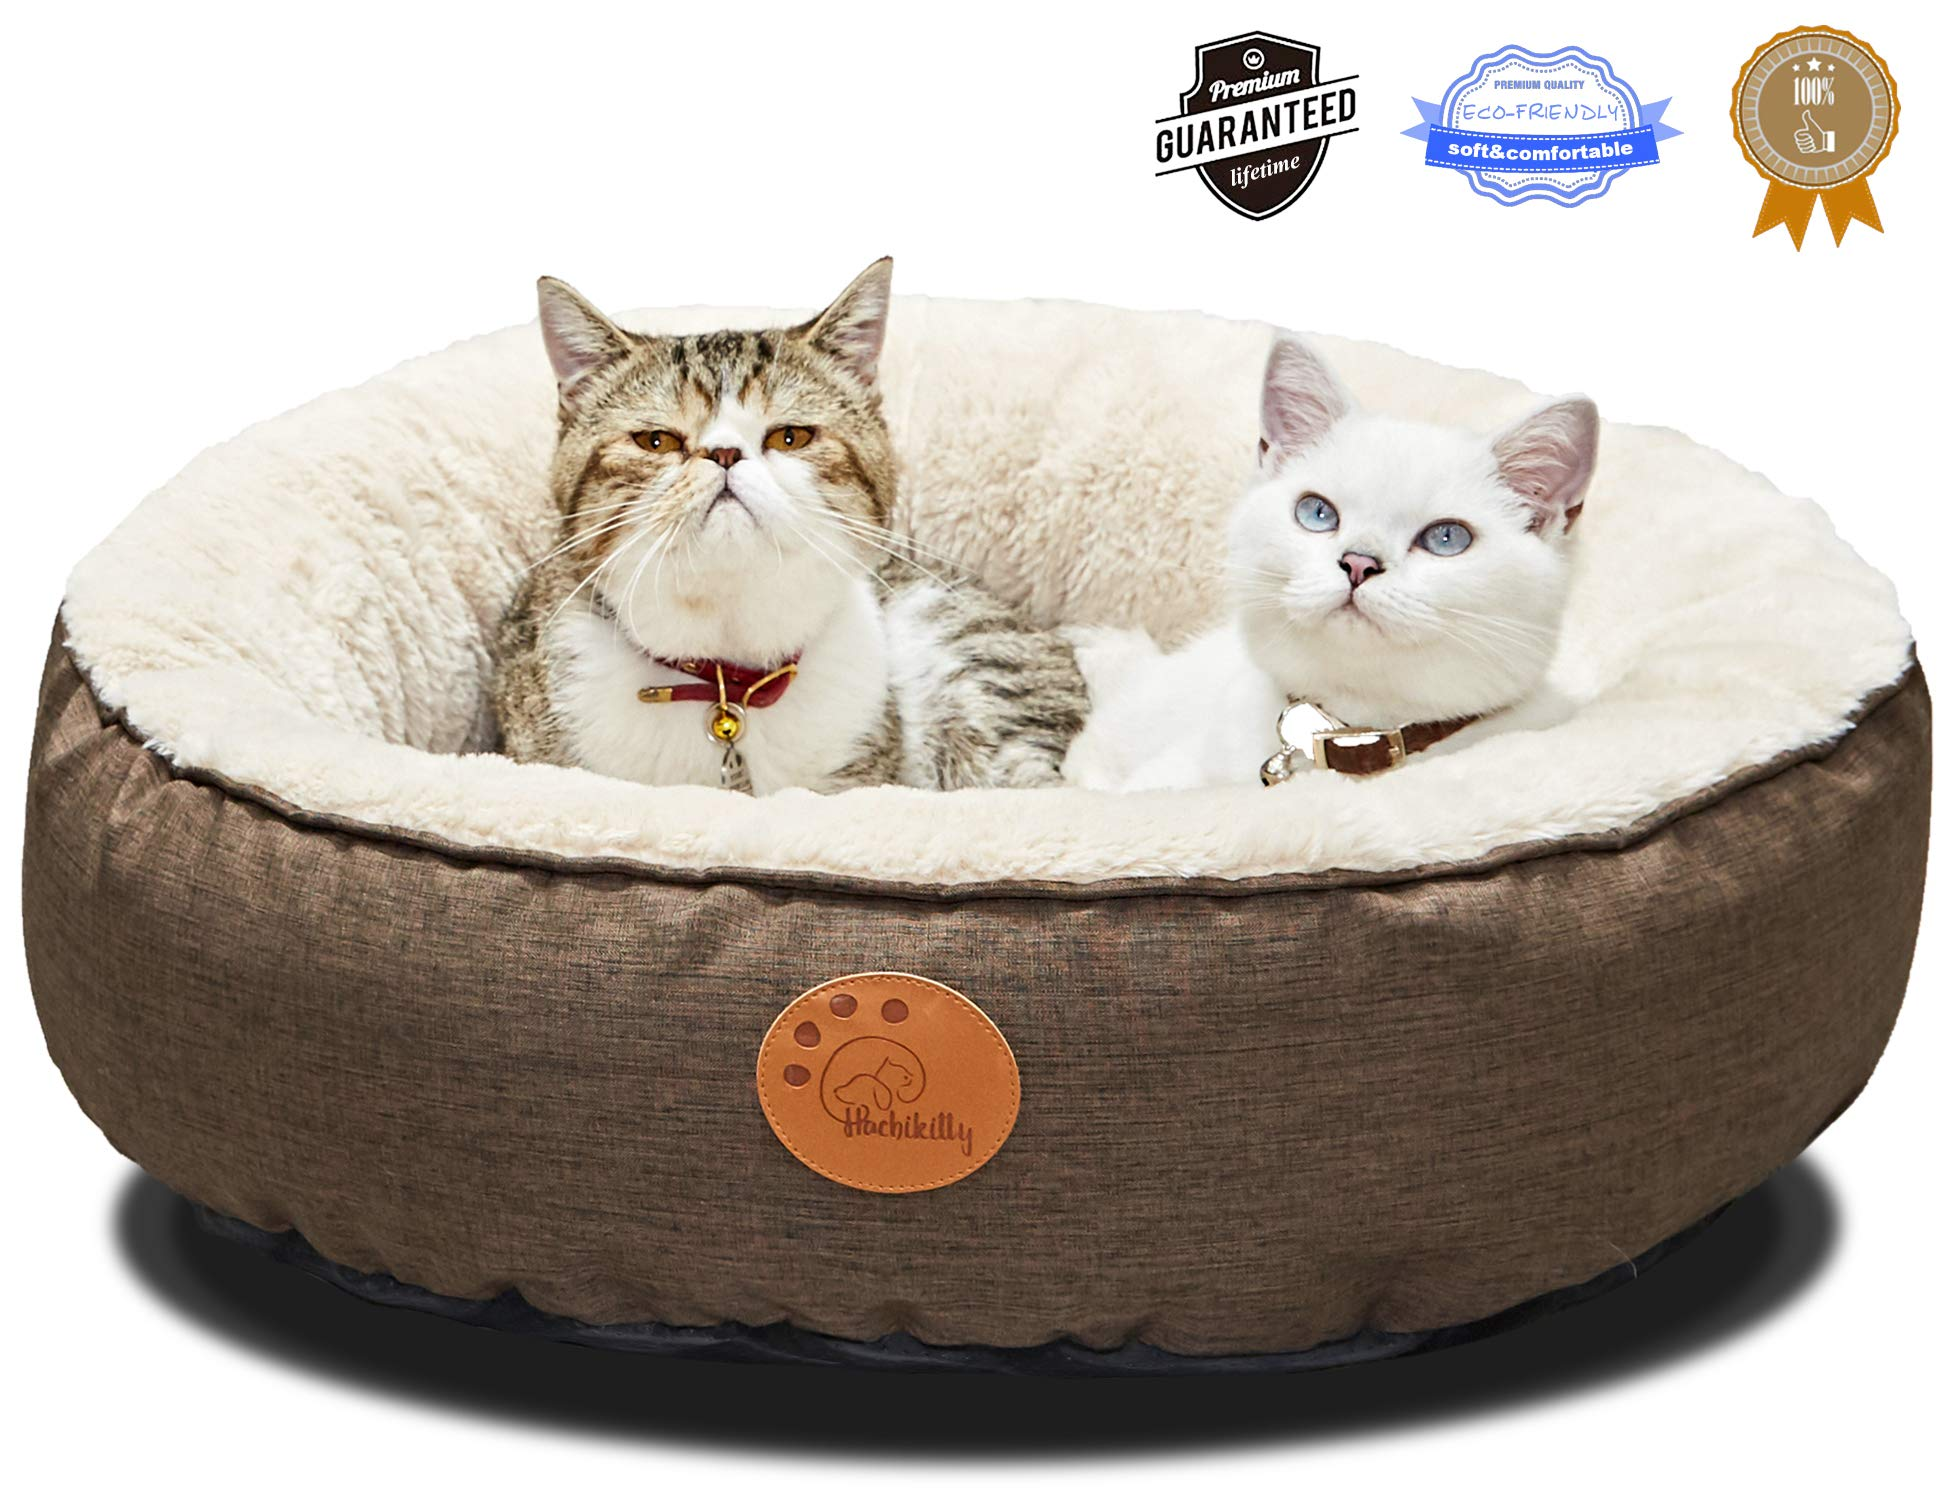 HACHIKITTY Washable Cat Warming Bed Round, Cat Beds Indoor Cats Medium, Big Pet Bed Machine Washable, 24, Brown by HACHIKITTY